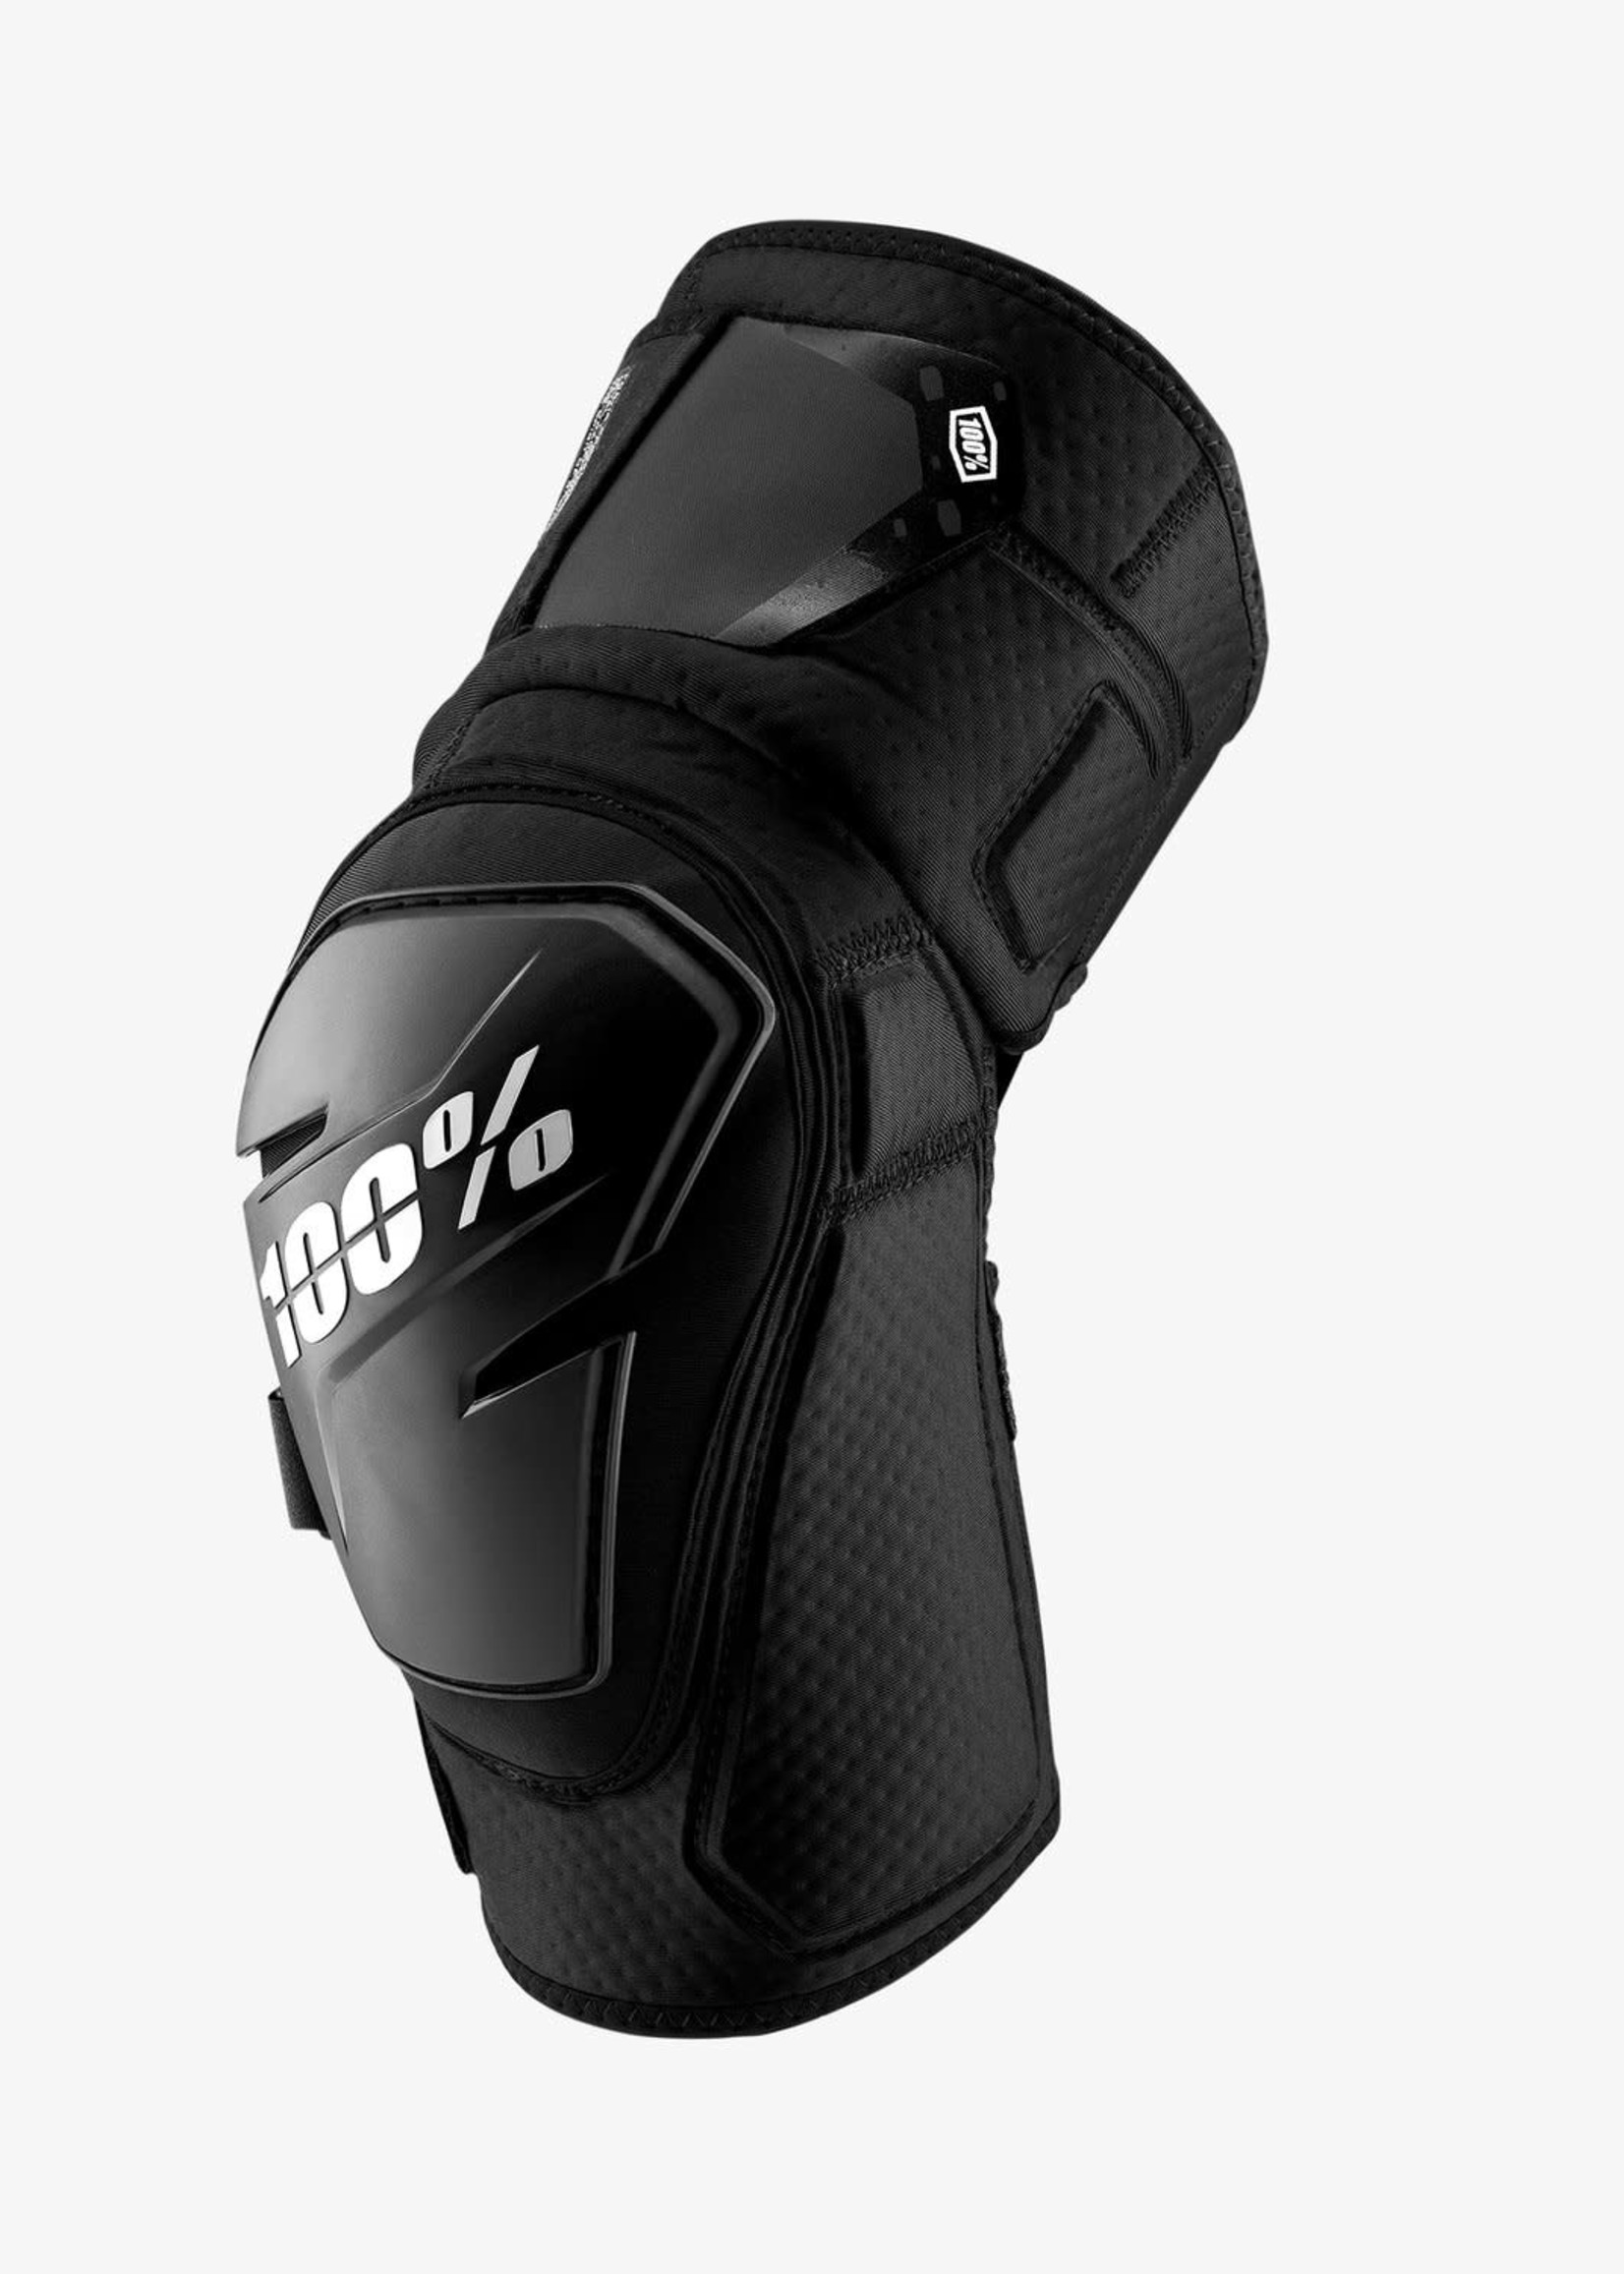 FORTIS KNEE GUARDS